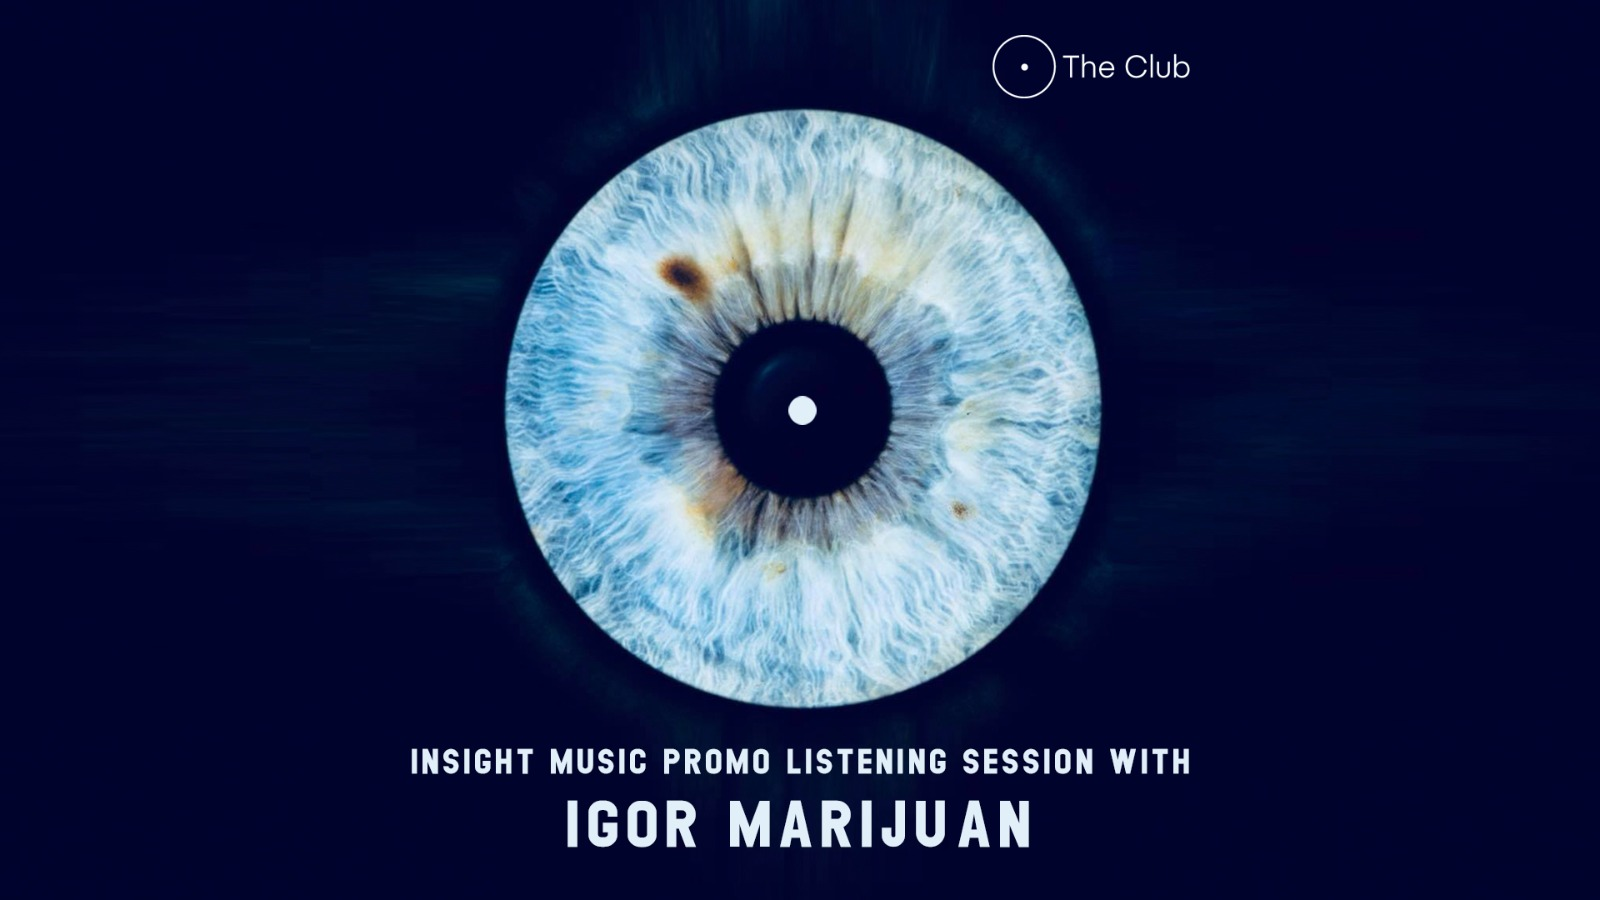 Music Promos listening session and tips with Igor Marijuan